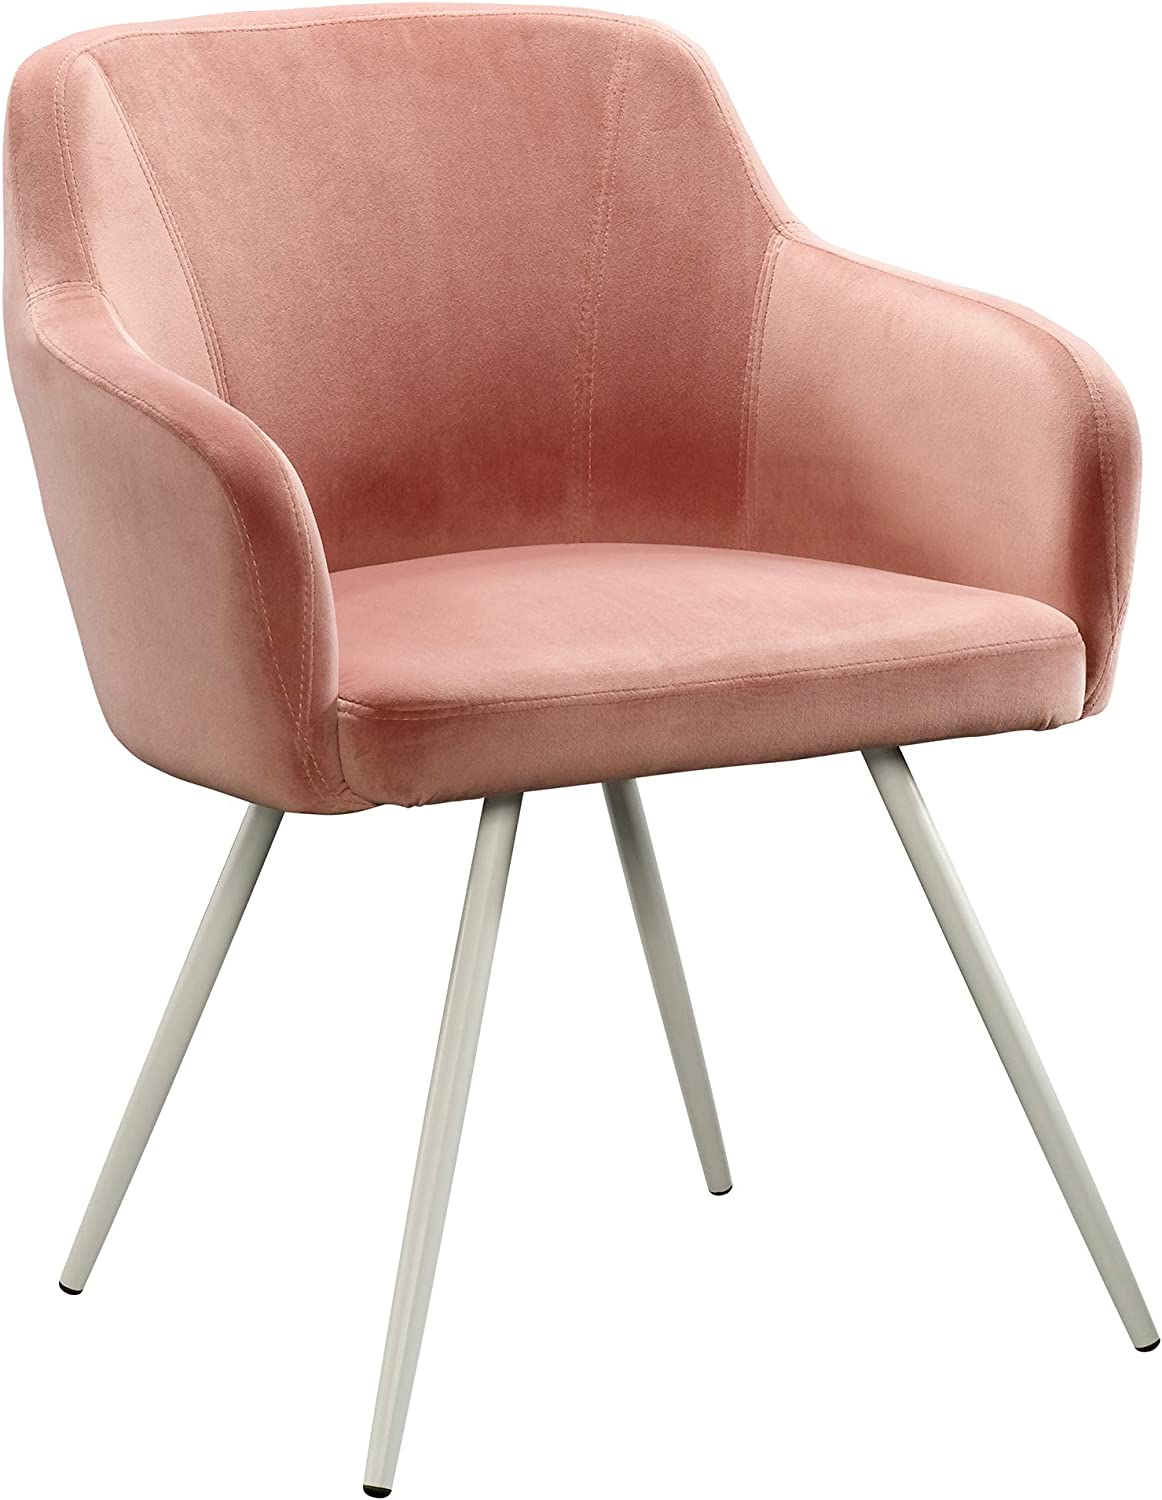 """Sauder Anda Norr Occasional Chair, L: 24.41"""" x W: 24.41"""" x H: 30.51"""", Salmon Pink"""